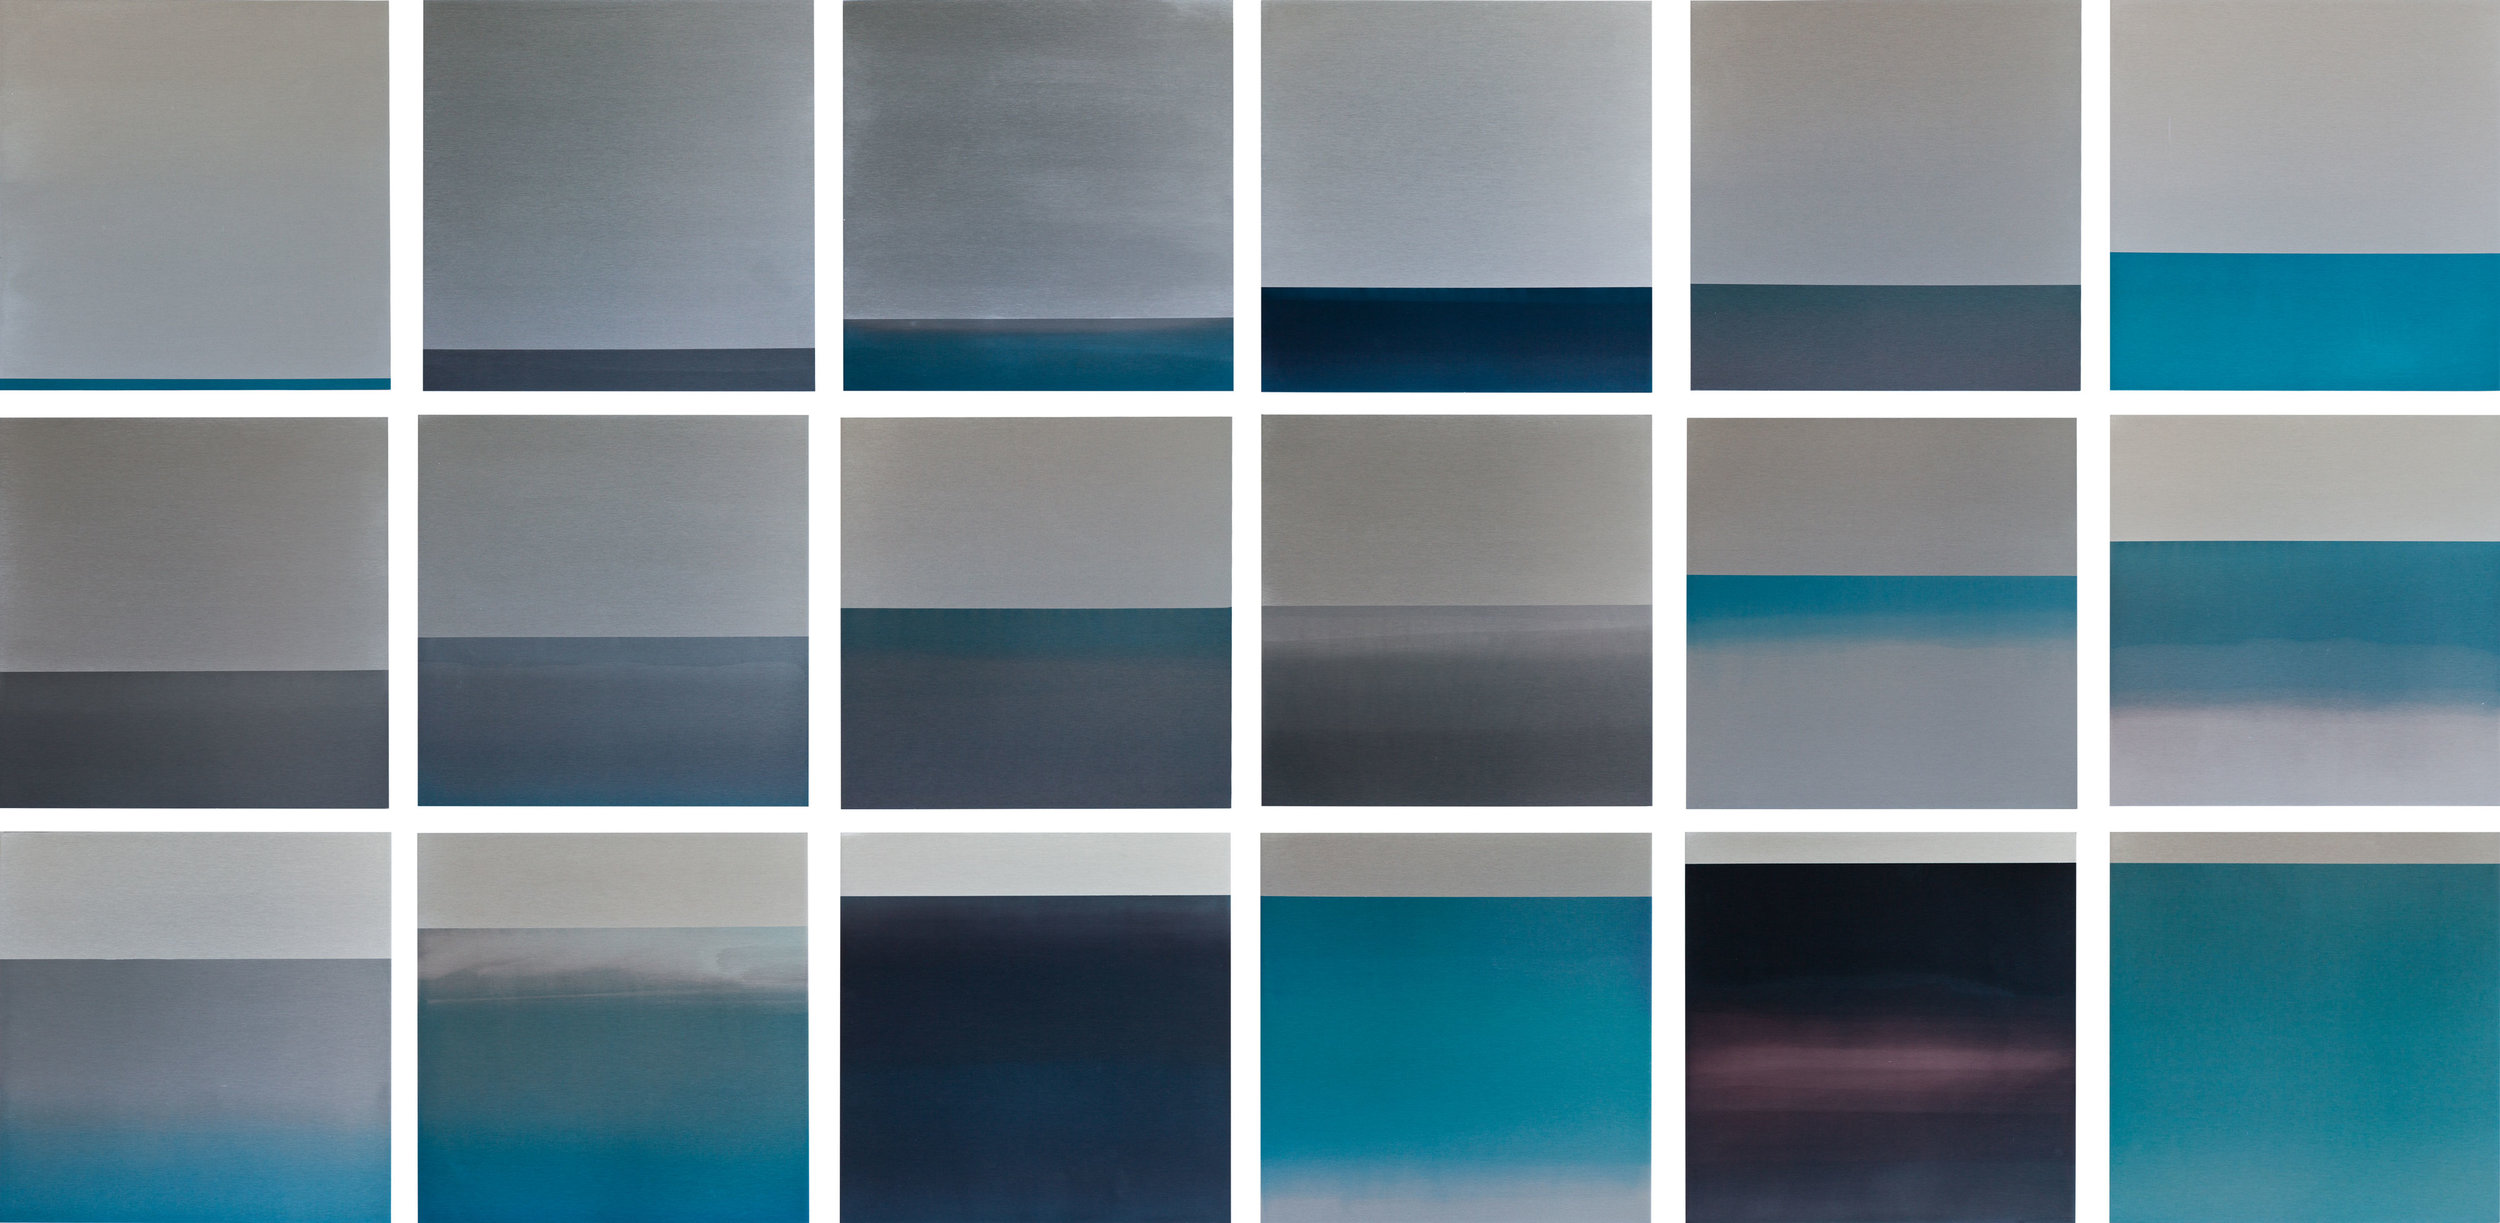 TIDES, 2011 WATER, DYE, ANODIZED ALUMINUM 36 X 72 INCHES (EACH PANEL 12X12 INCHES)